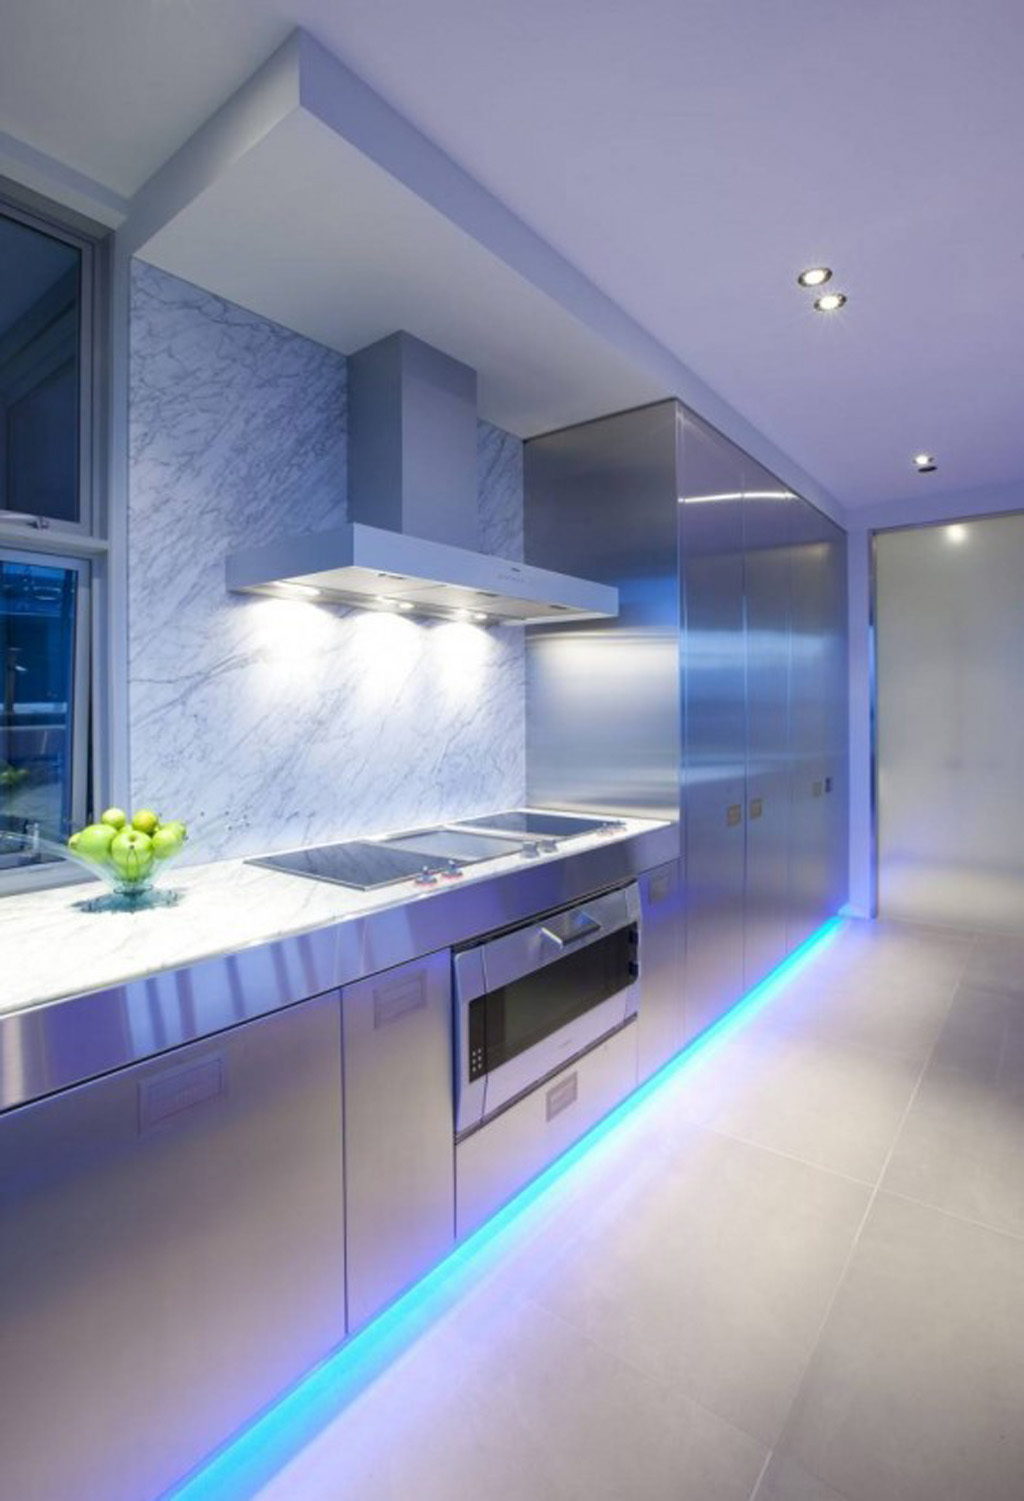 TOP 10 Led ceiling lights kitchen 2018 | Warisan Lighting Room Ceiling Lighting Ideas Html on living room lighting ideas, great room lighting ideas, room ceiling design, family room lighting ideas, room led lighting ideas, room wall ideas, room floor lighting ideas, track lighting ideas, great room decorating ideas, room kitchen ideas, room ceiling lights, room christmas decor ideas, rope lighting ideas,